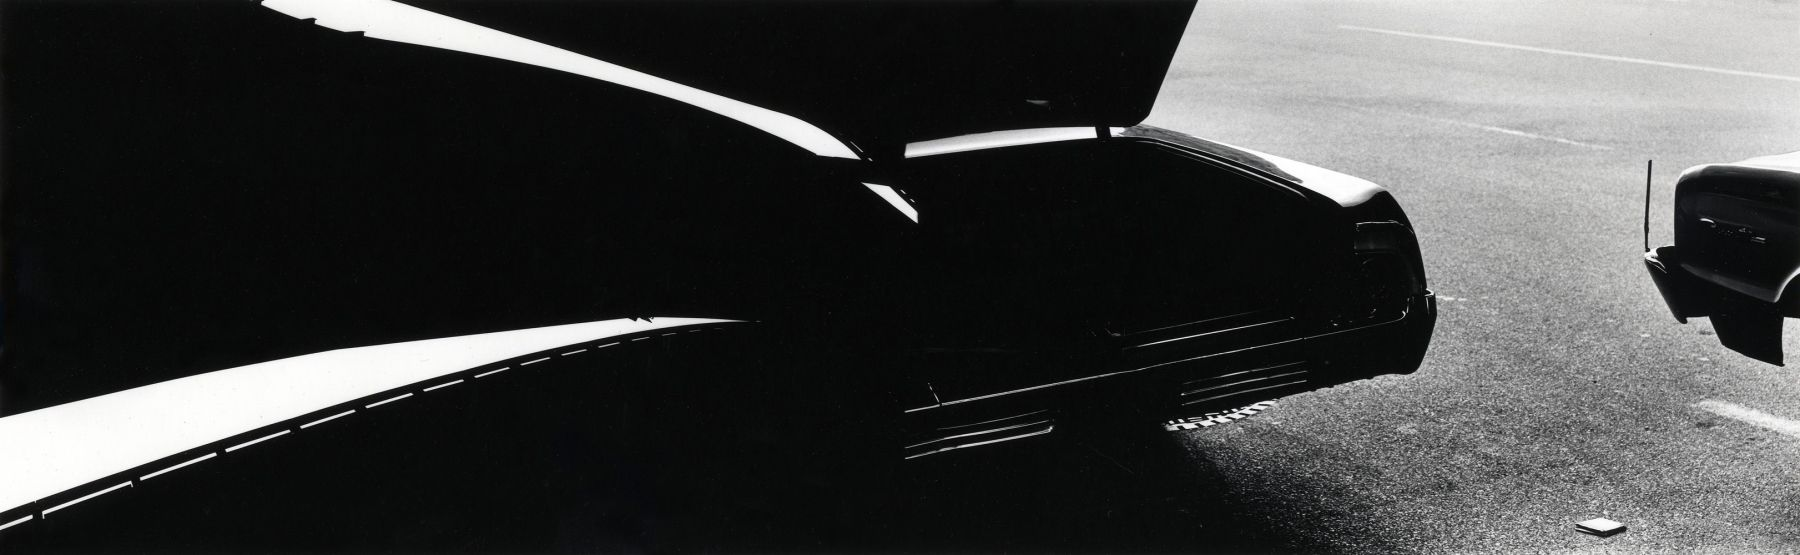 Ray Metzker Double Frame New York City 1966